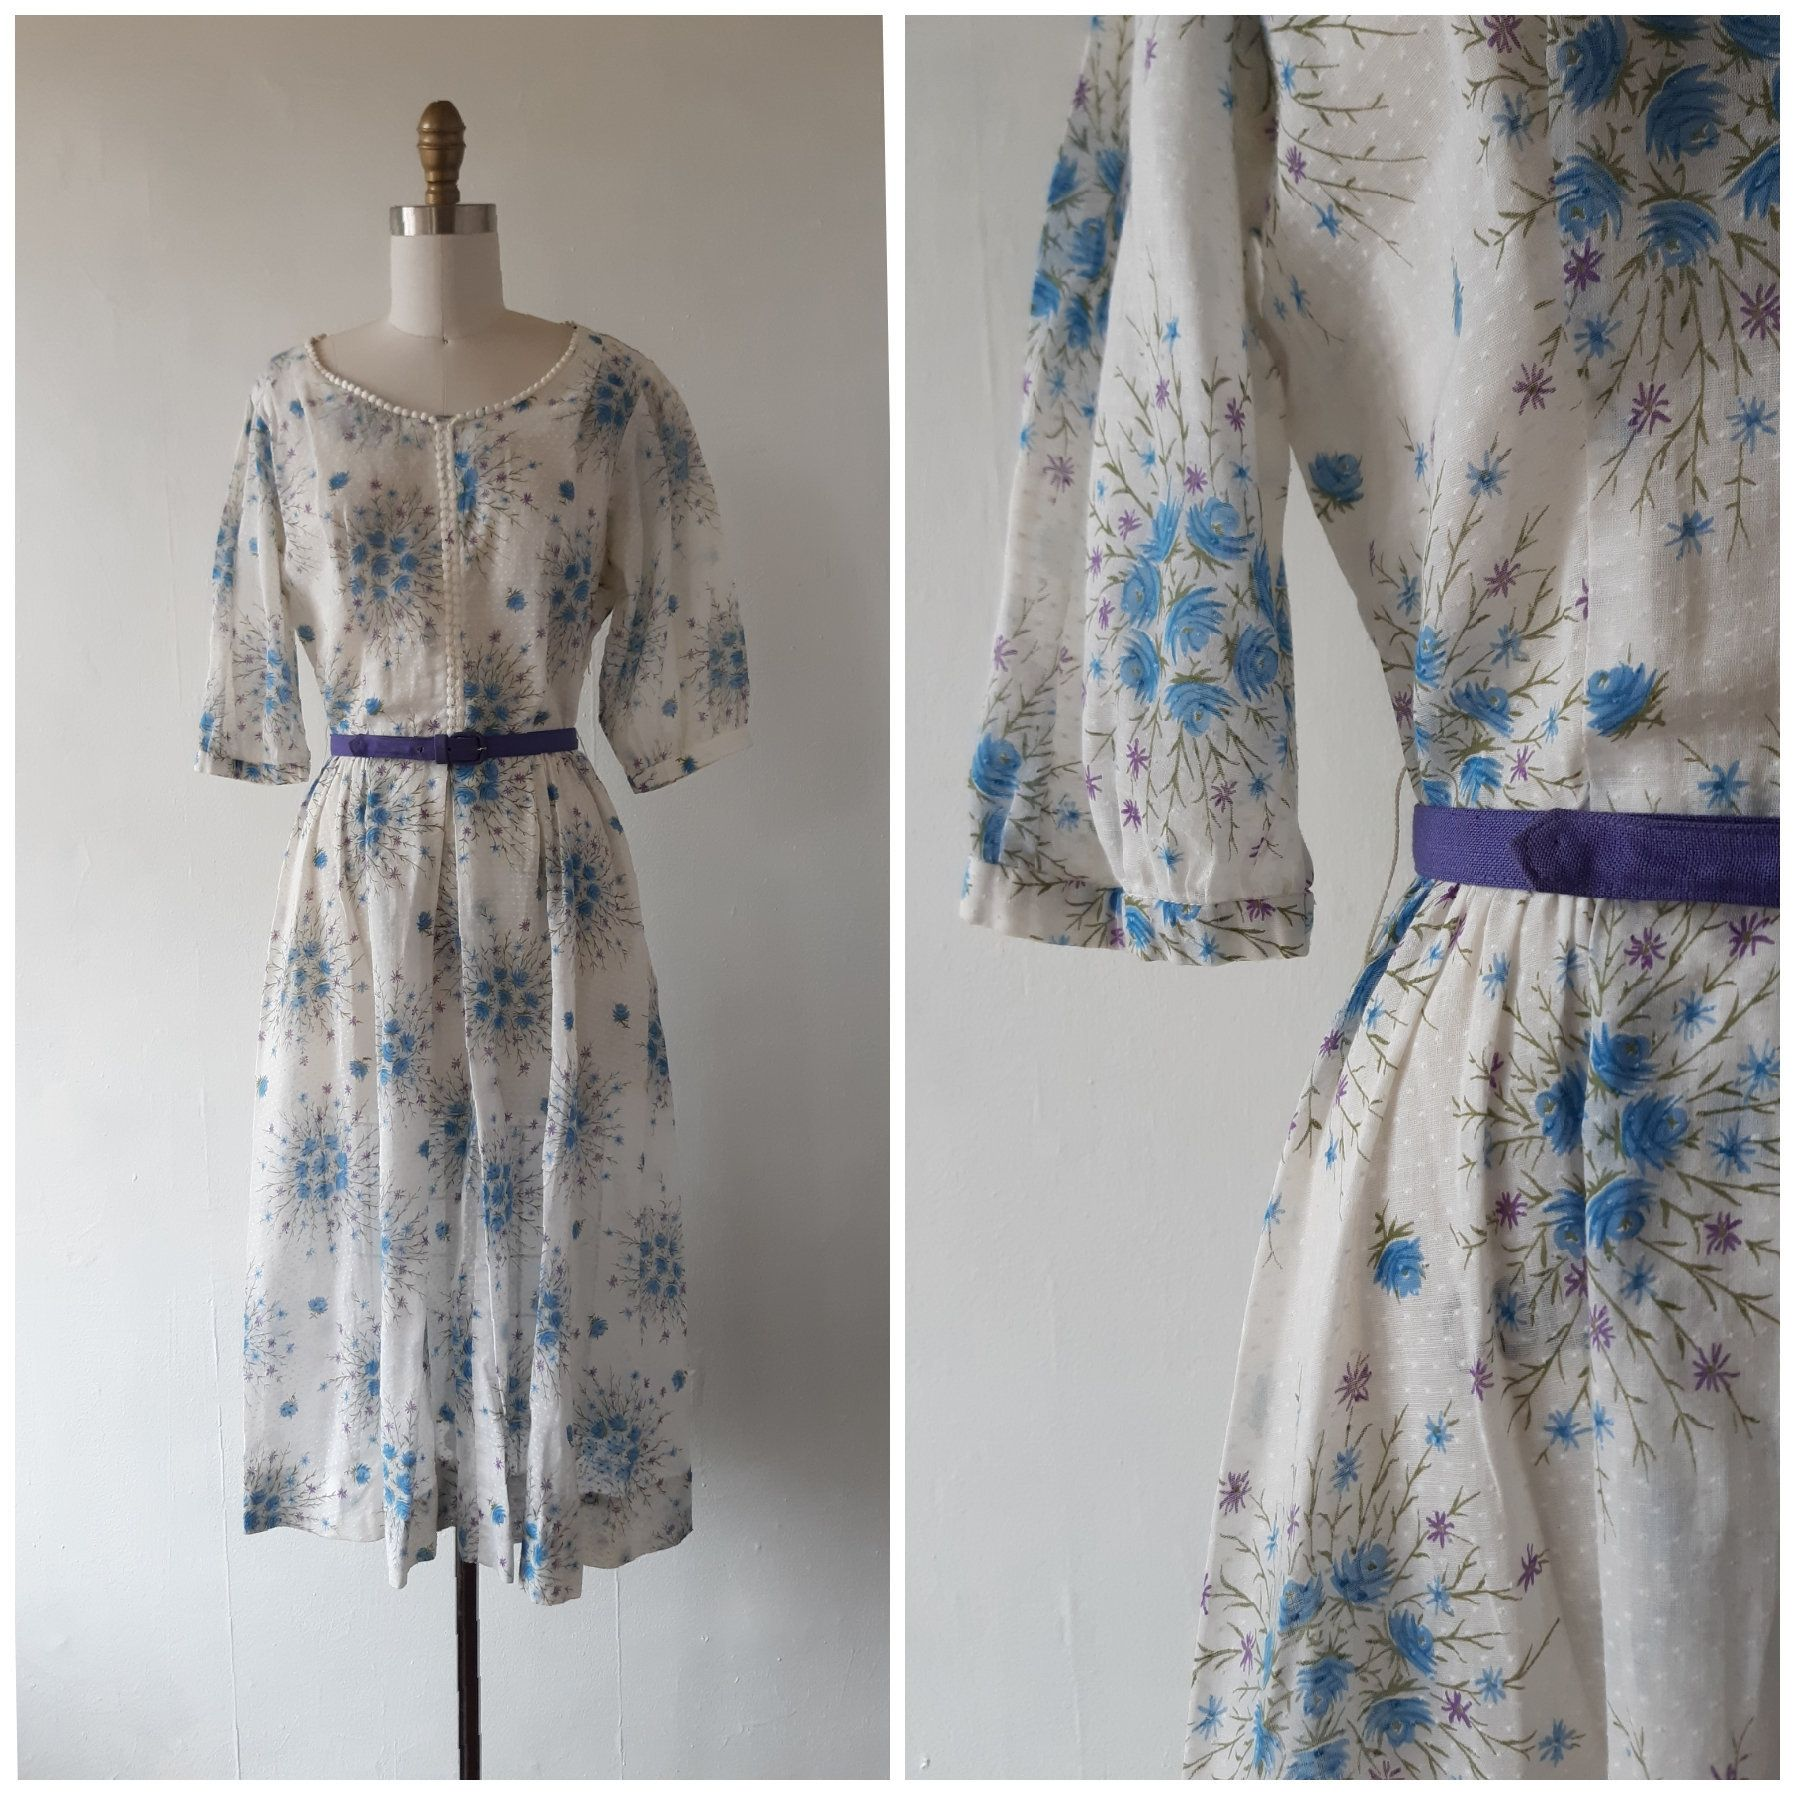 1940s Dress Vintage 1940s Dress With Blue And White Floral Vintage Floral Print Dress Floral Print Dress 1940s Dresses